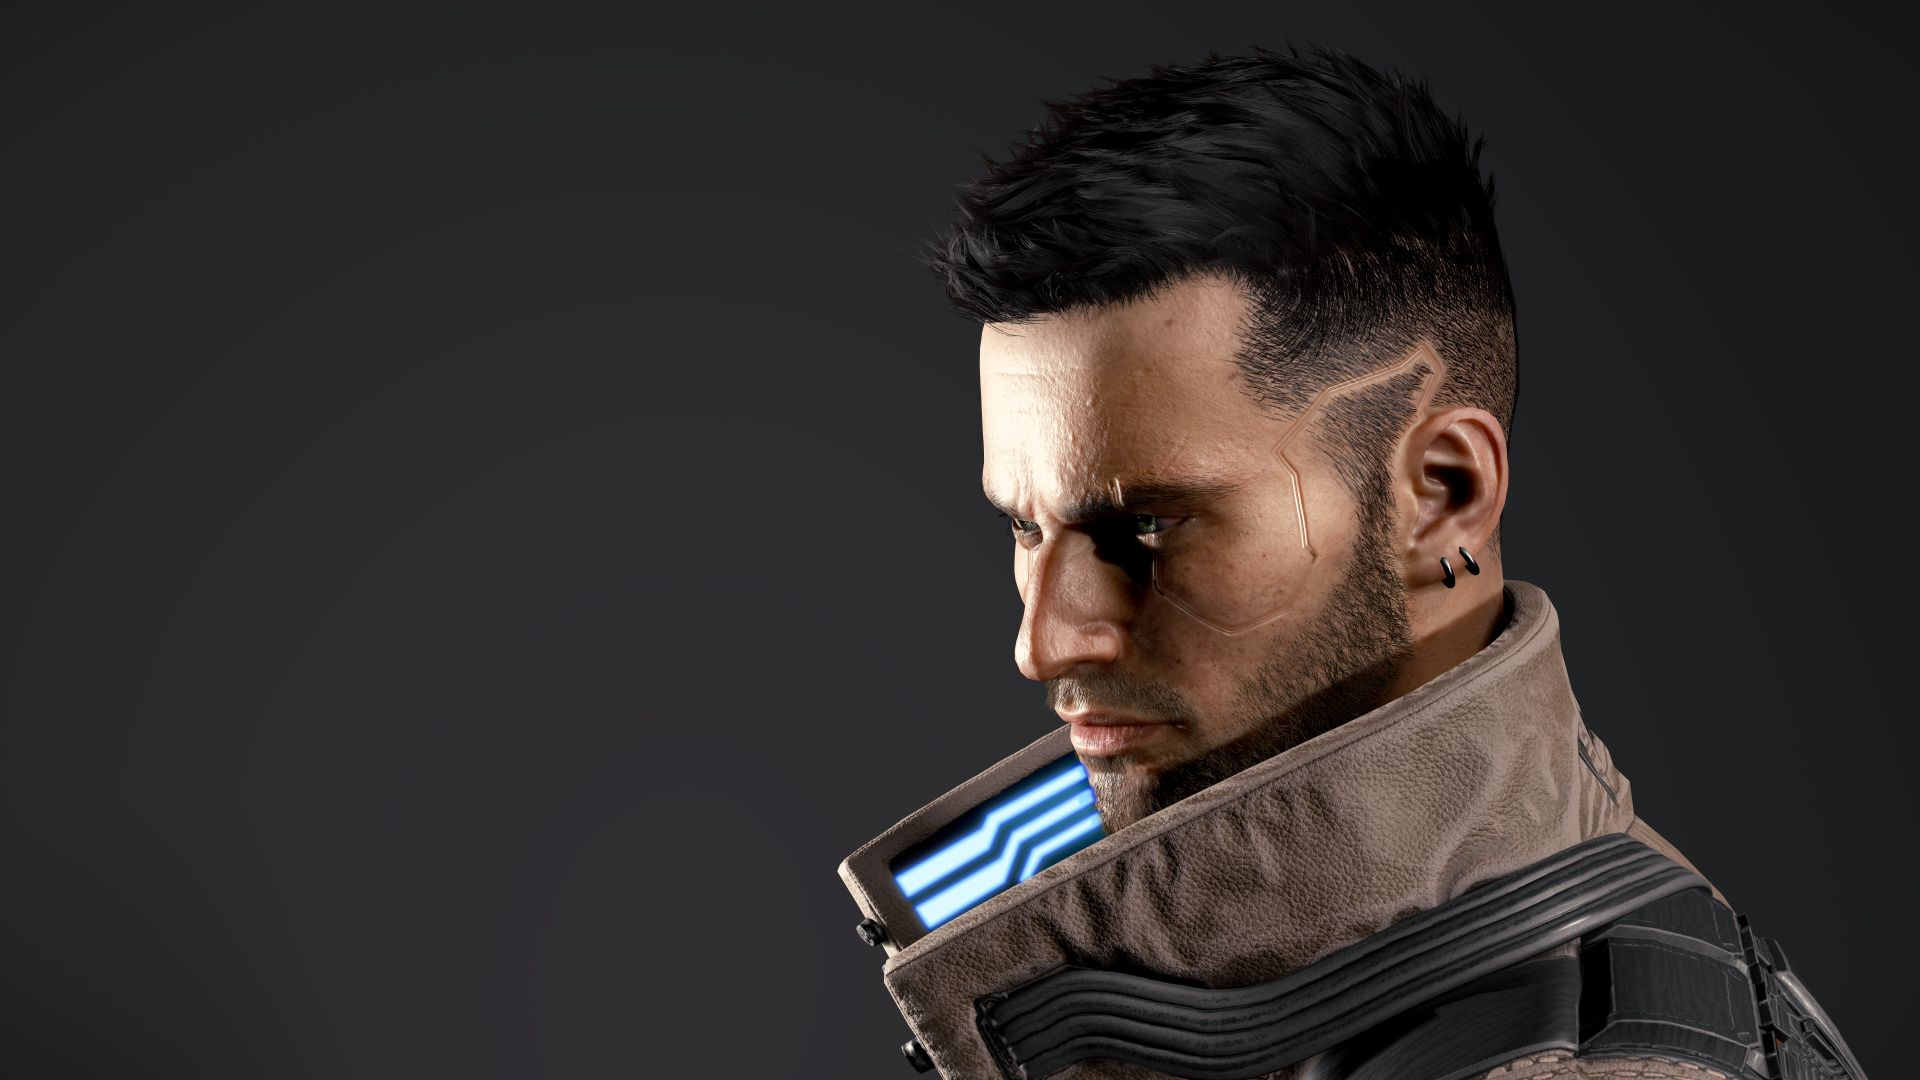 Change of appearance. A haircut. How to change hair after starting Cyberpunk 2077